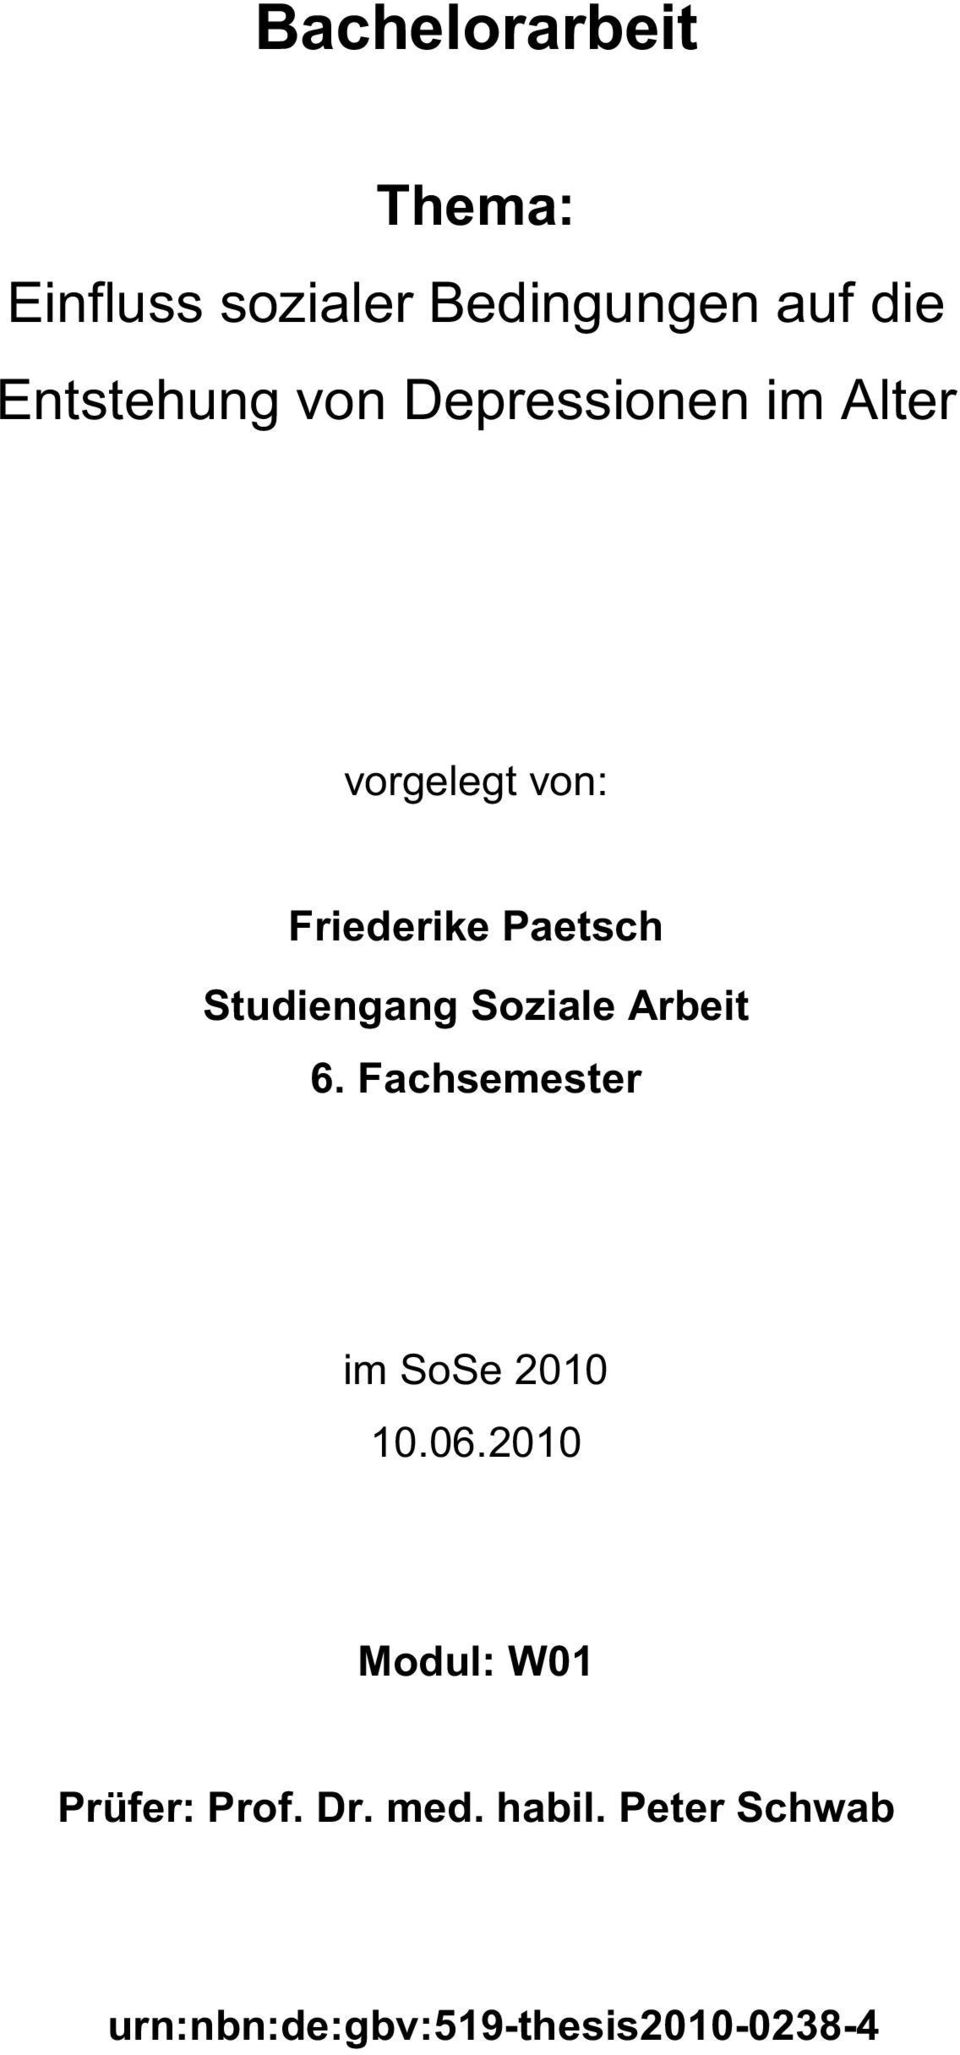 bachelor thesis fhnw soziale arbeit